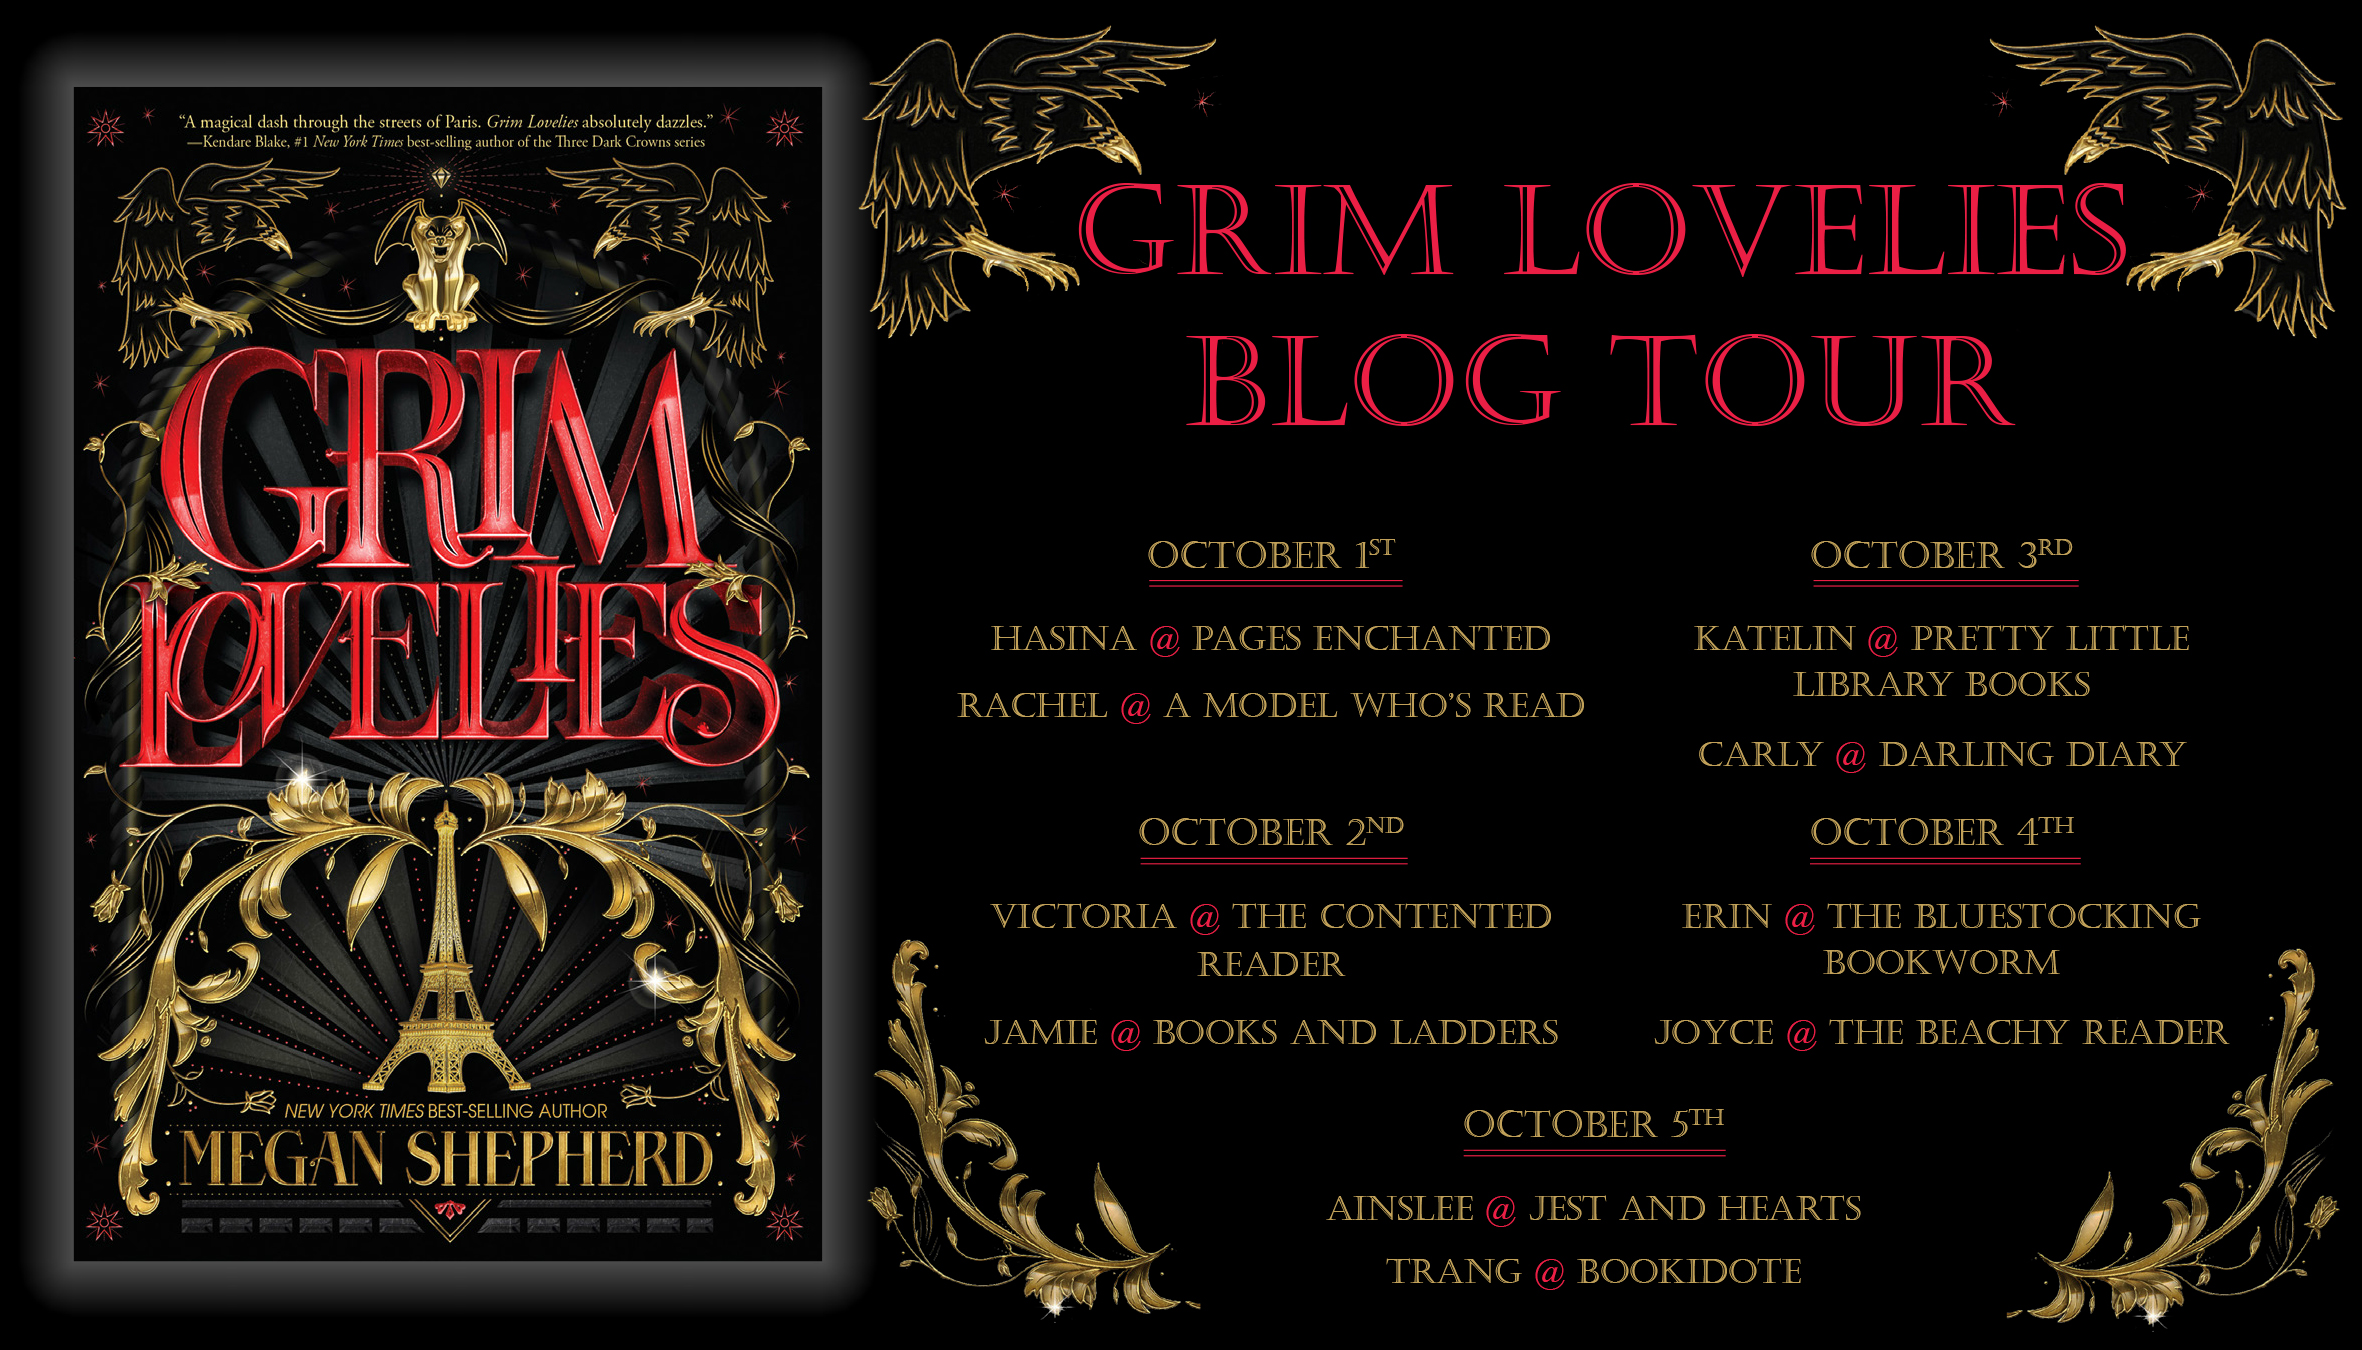 Grim Lovelies Blog Tour - The Contented Reader